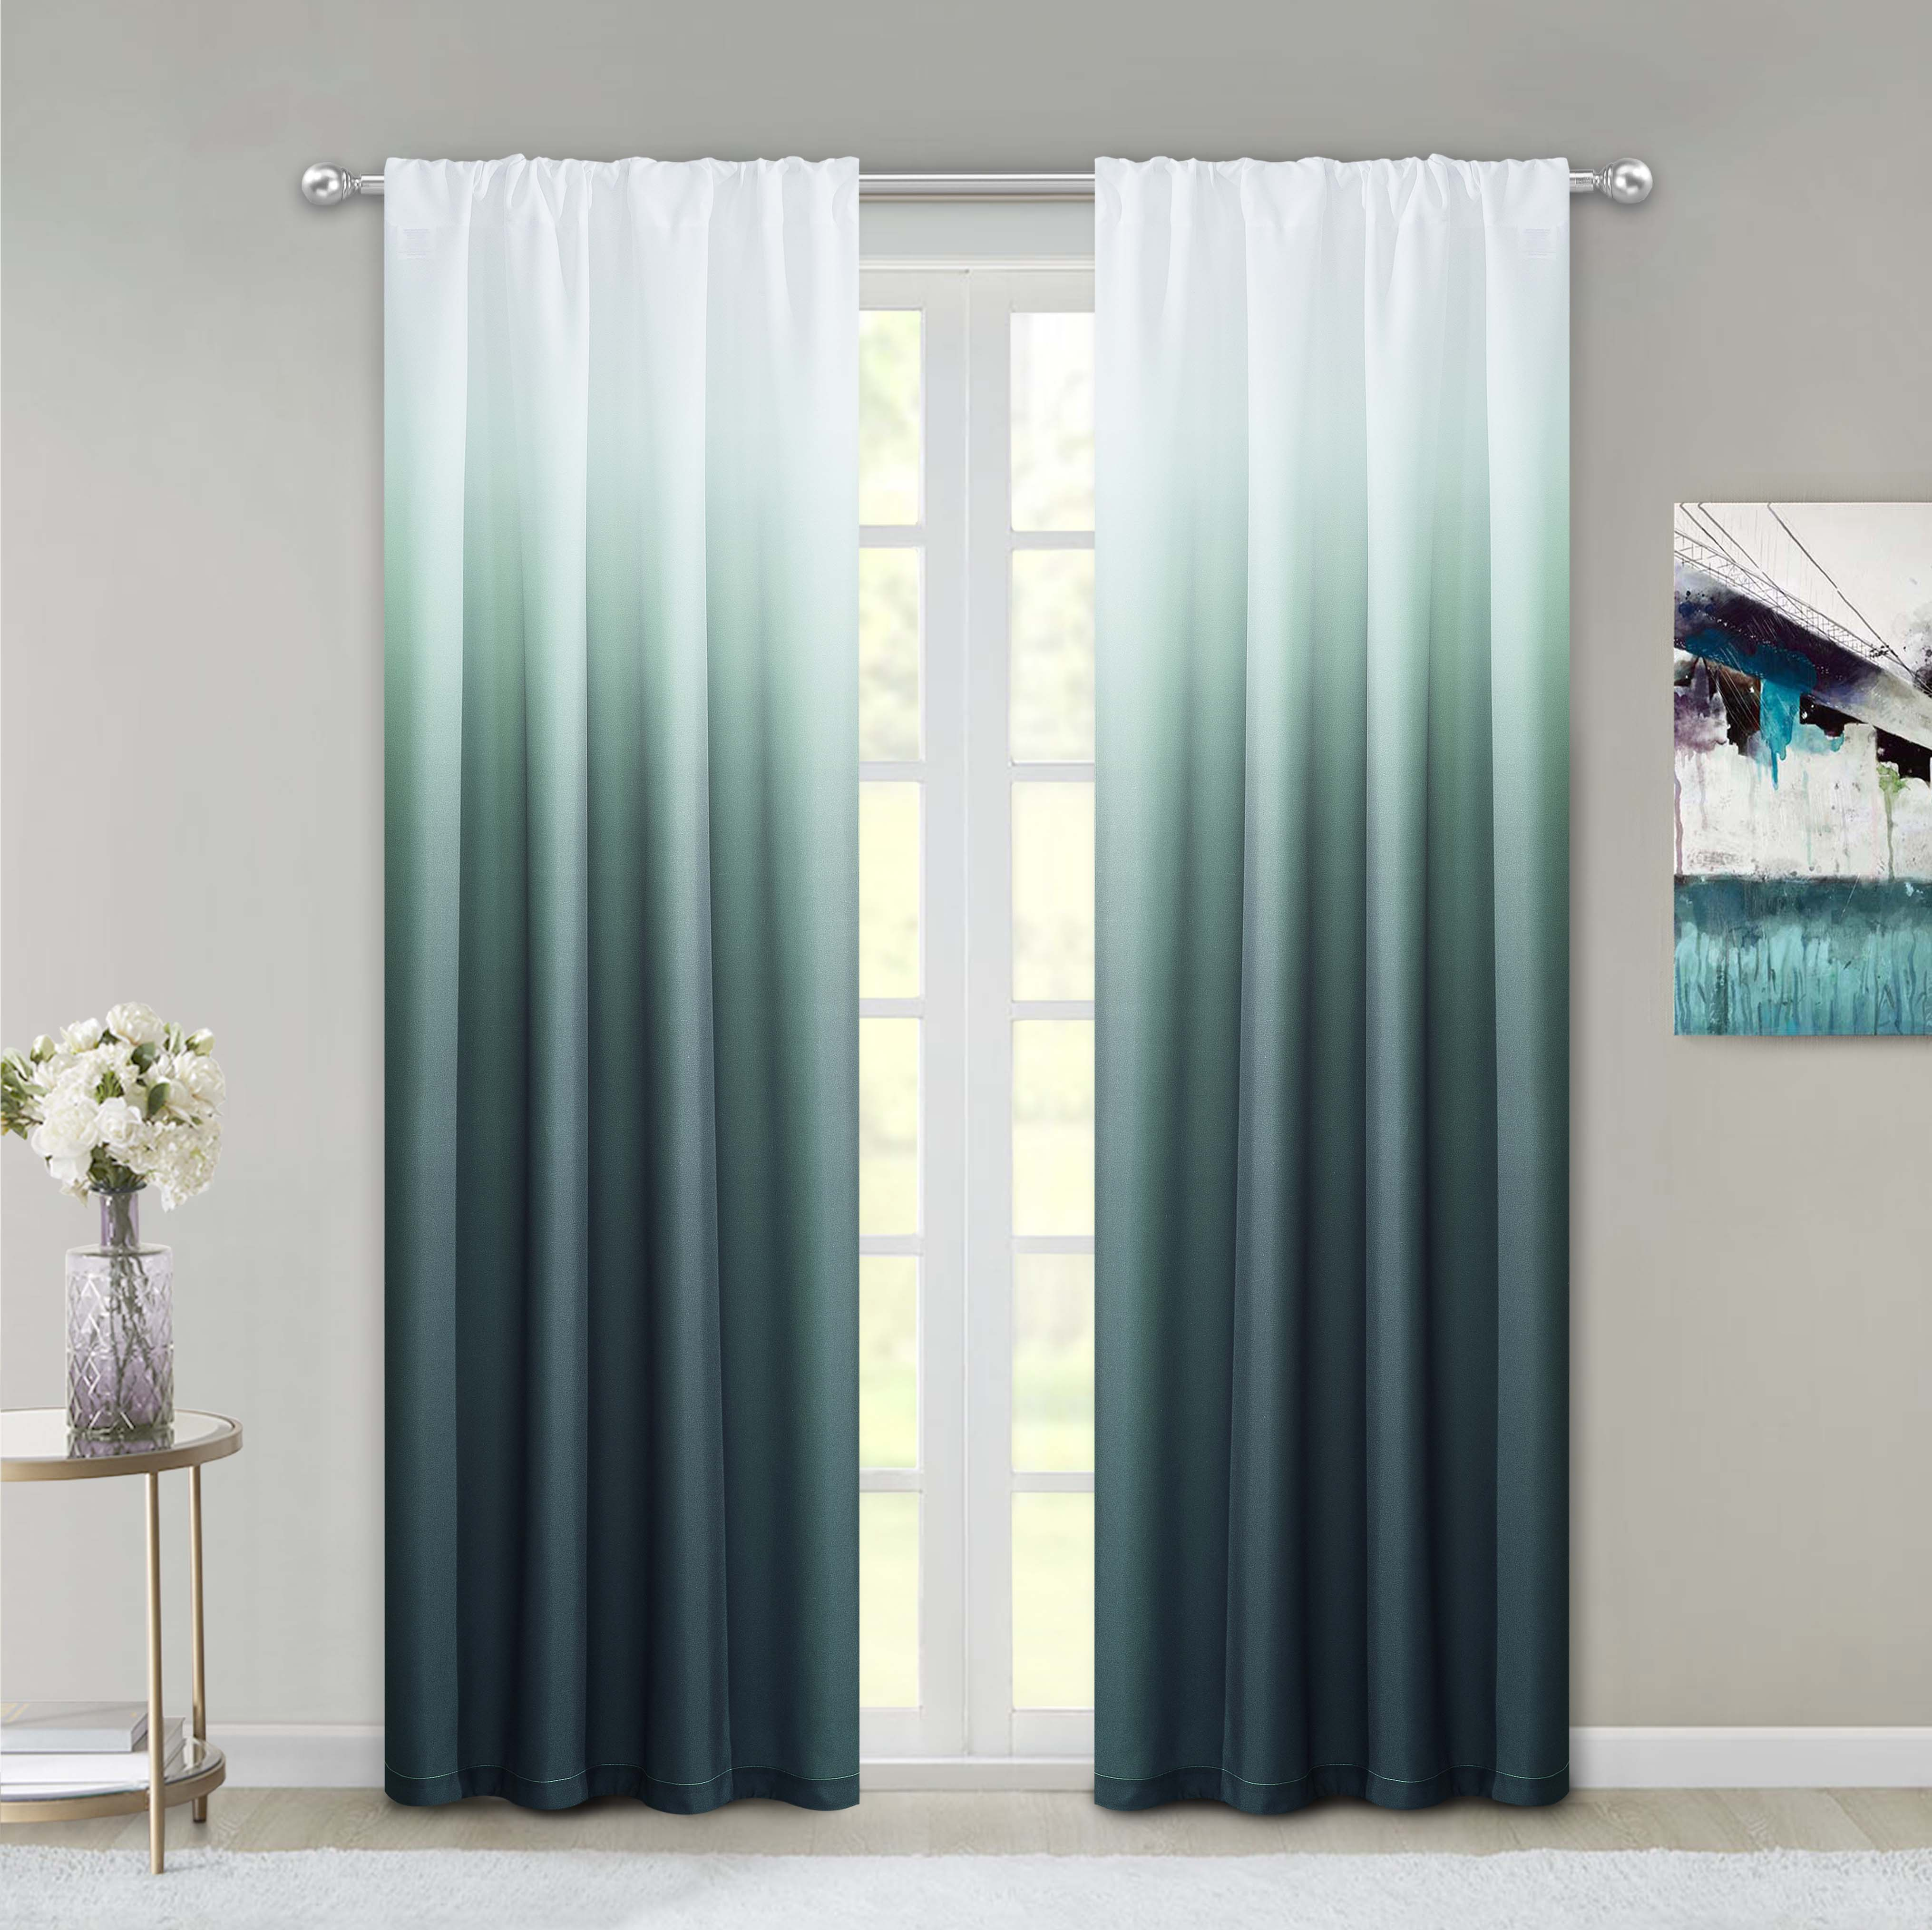 home kitchen 2 panels 30inch wide by 24inch long idealhouse airy blue tier curtains waffle woven textured short window curtain for cafe bathroom kitchen kids bedroom rod pocket curtains draperies curtains